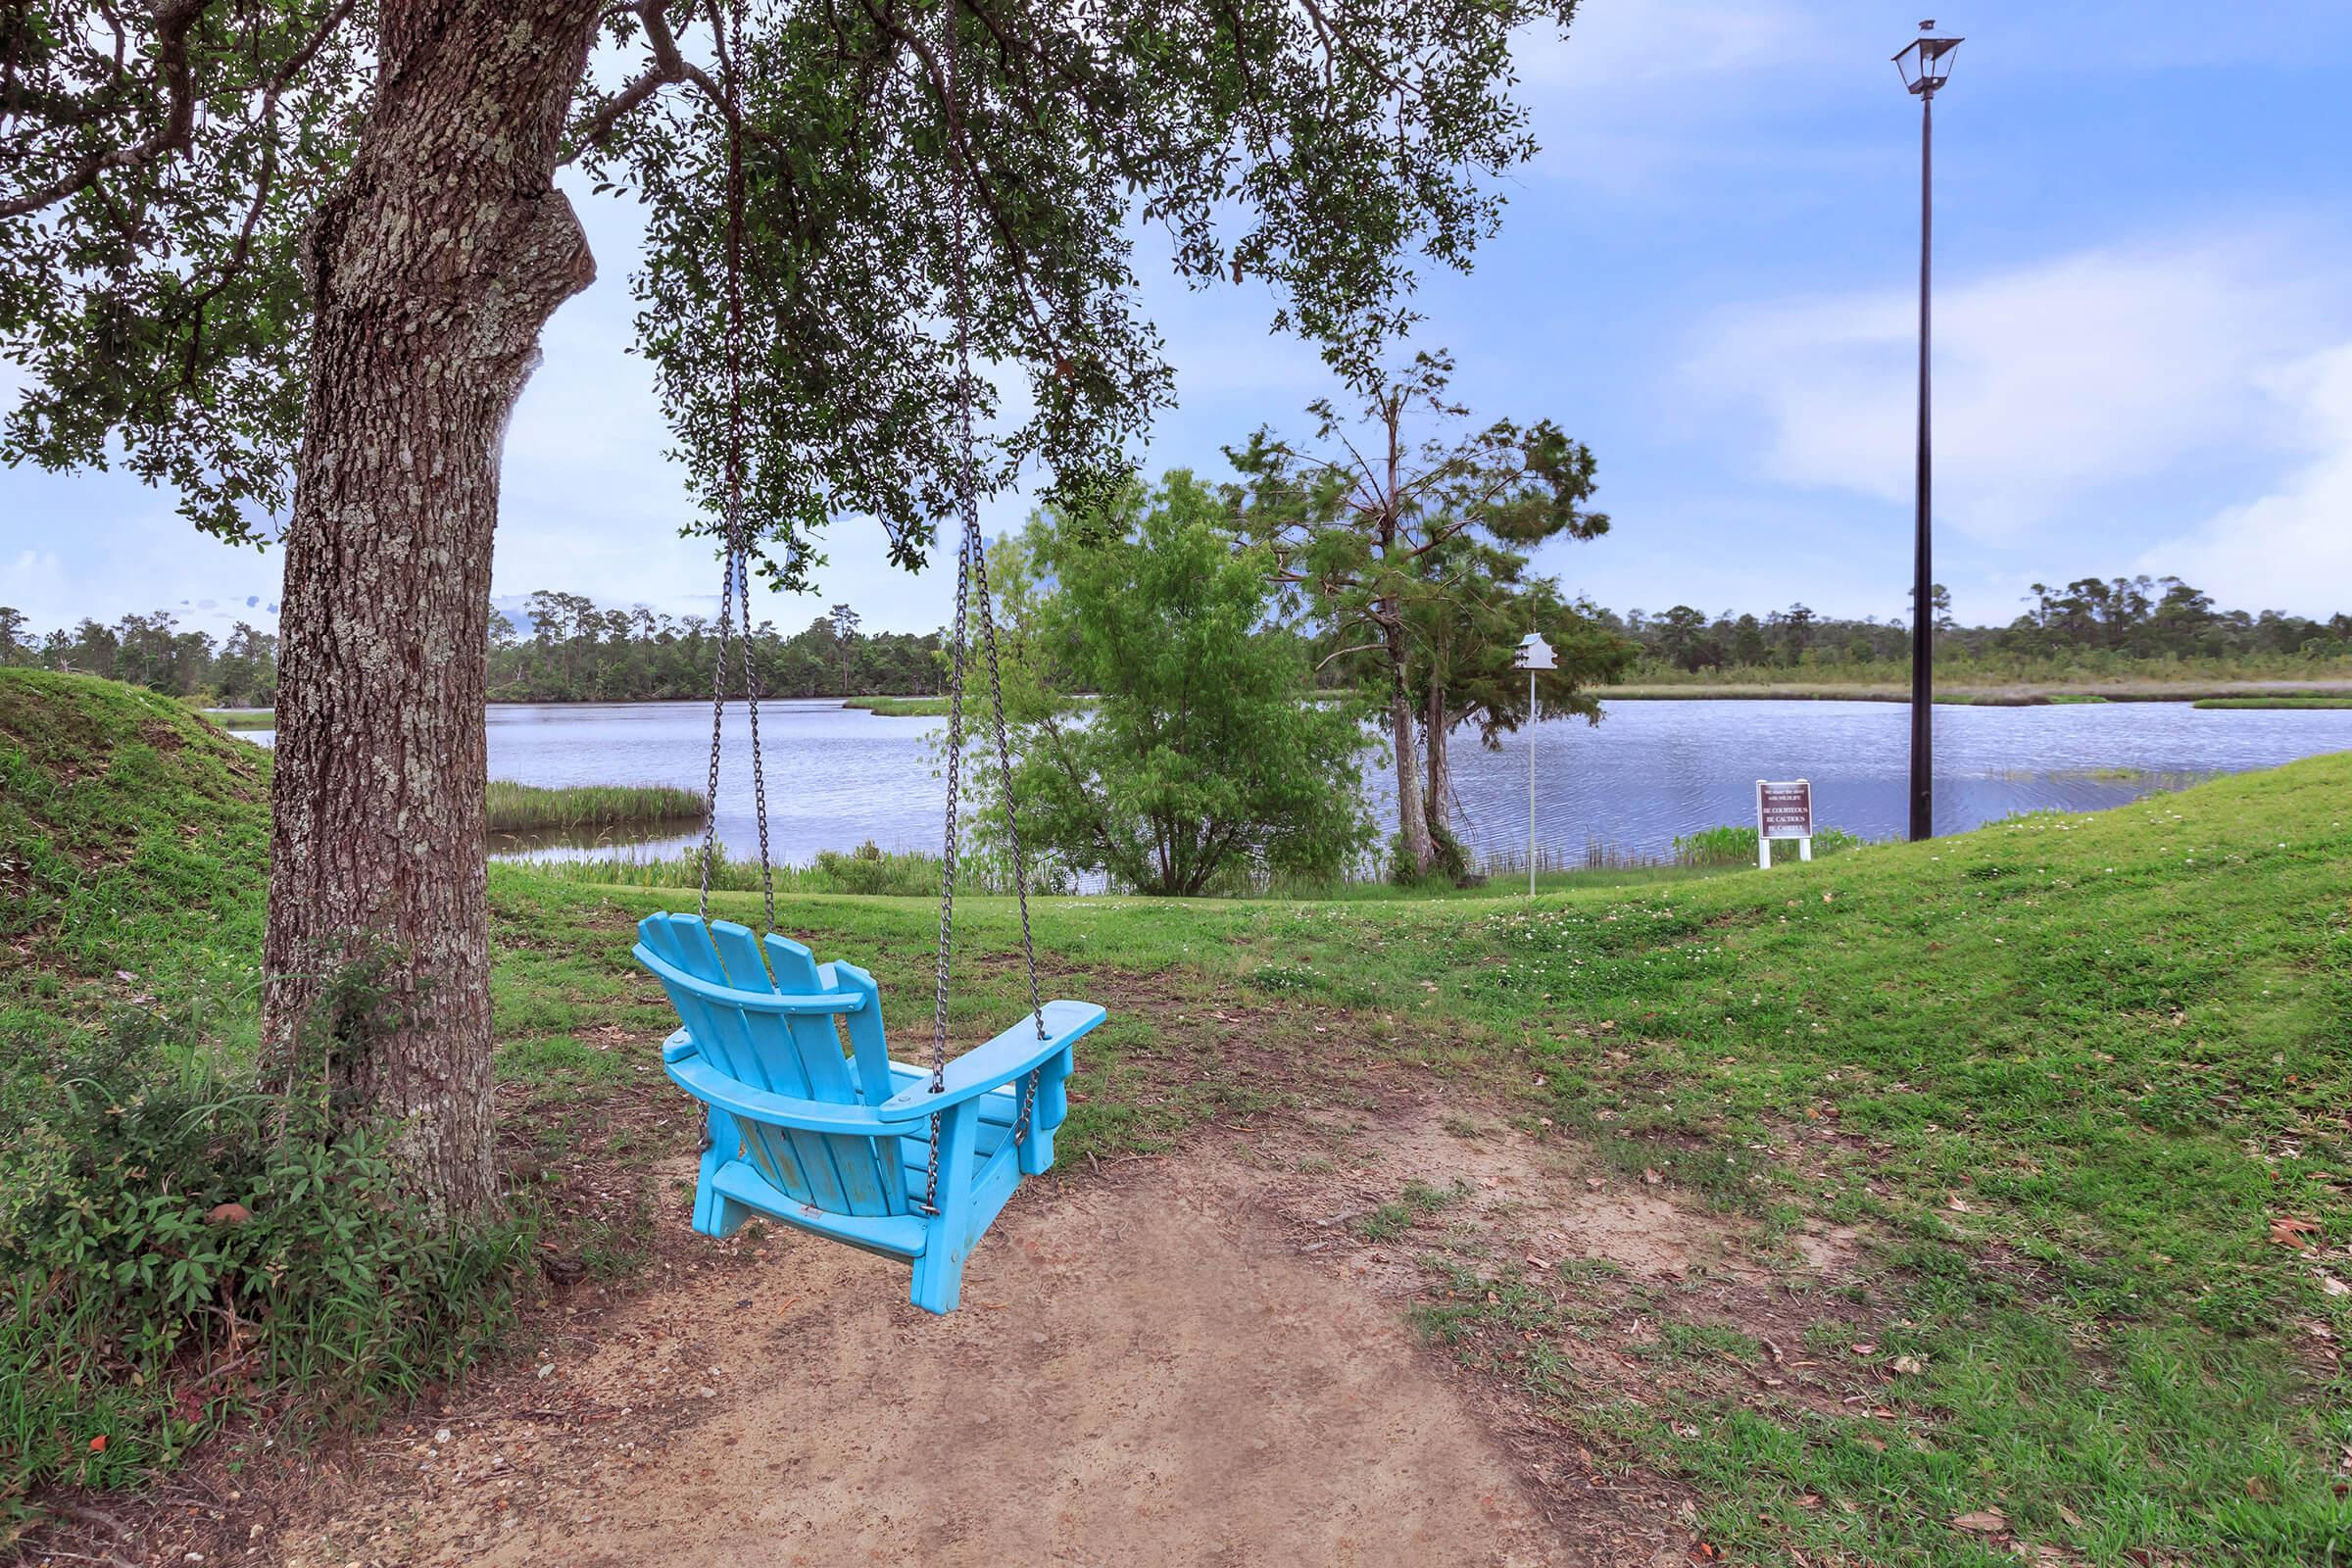 a blue bench in front of a body of water